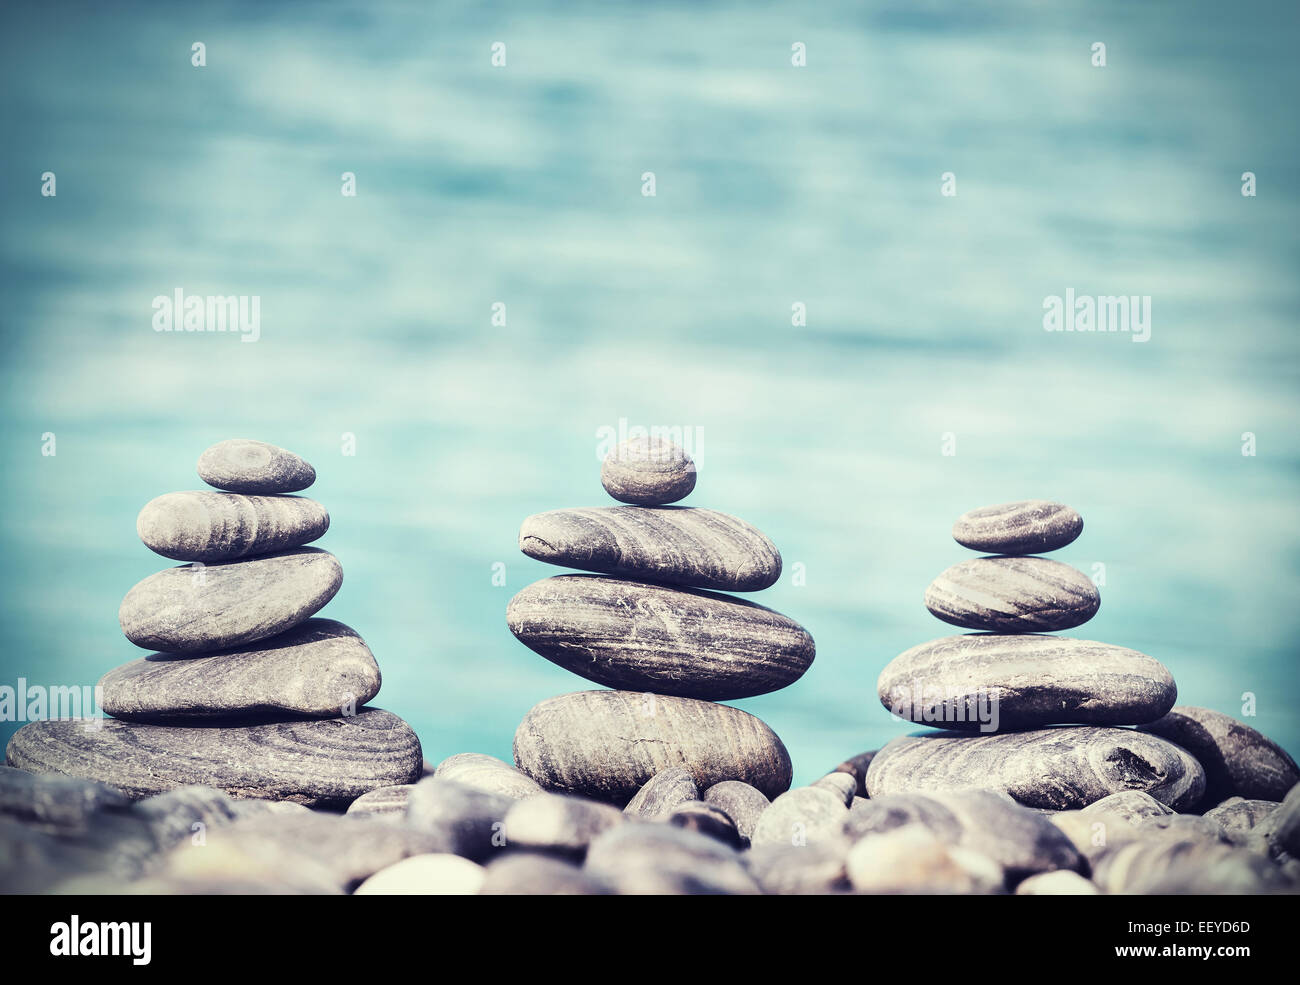 Vintage retro hipster style image of stones on beach, Zen spa concept background. - Stock Image